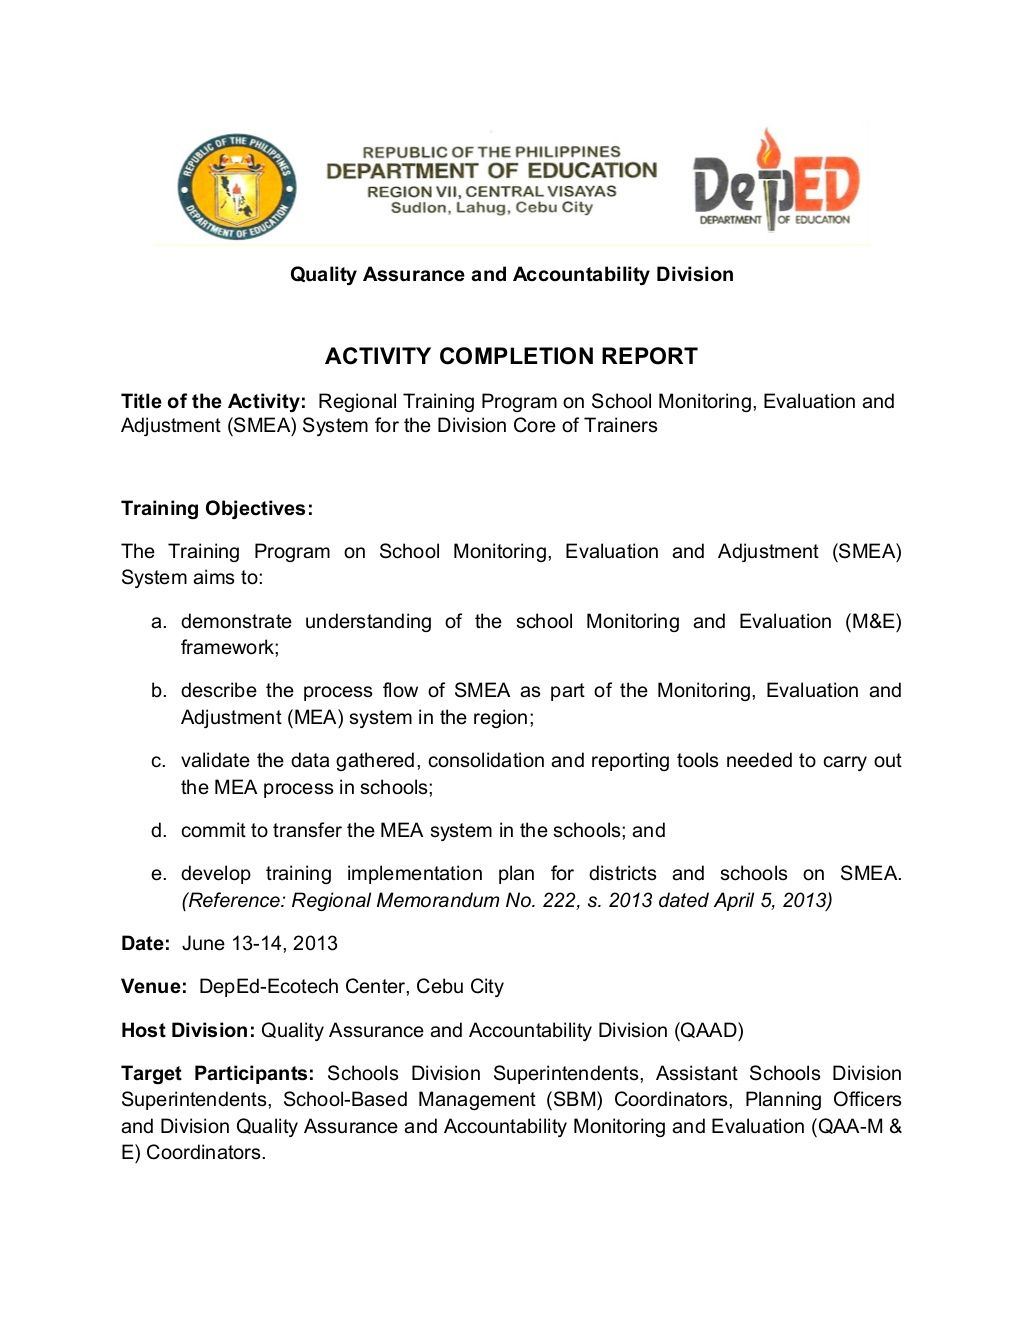 School Monitoring Evaluation And Adjustment Activity Completion